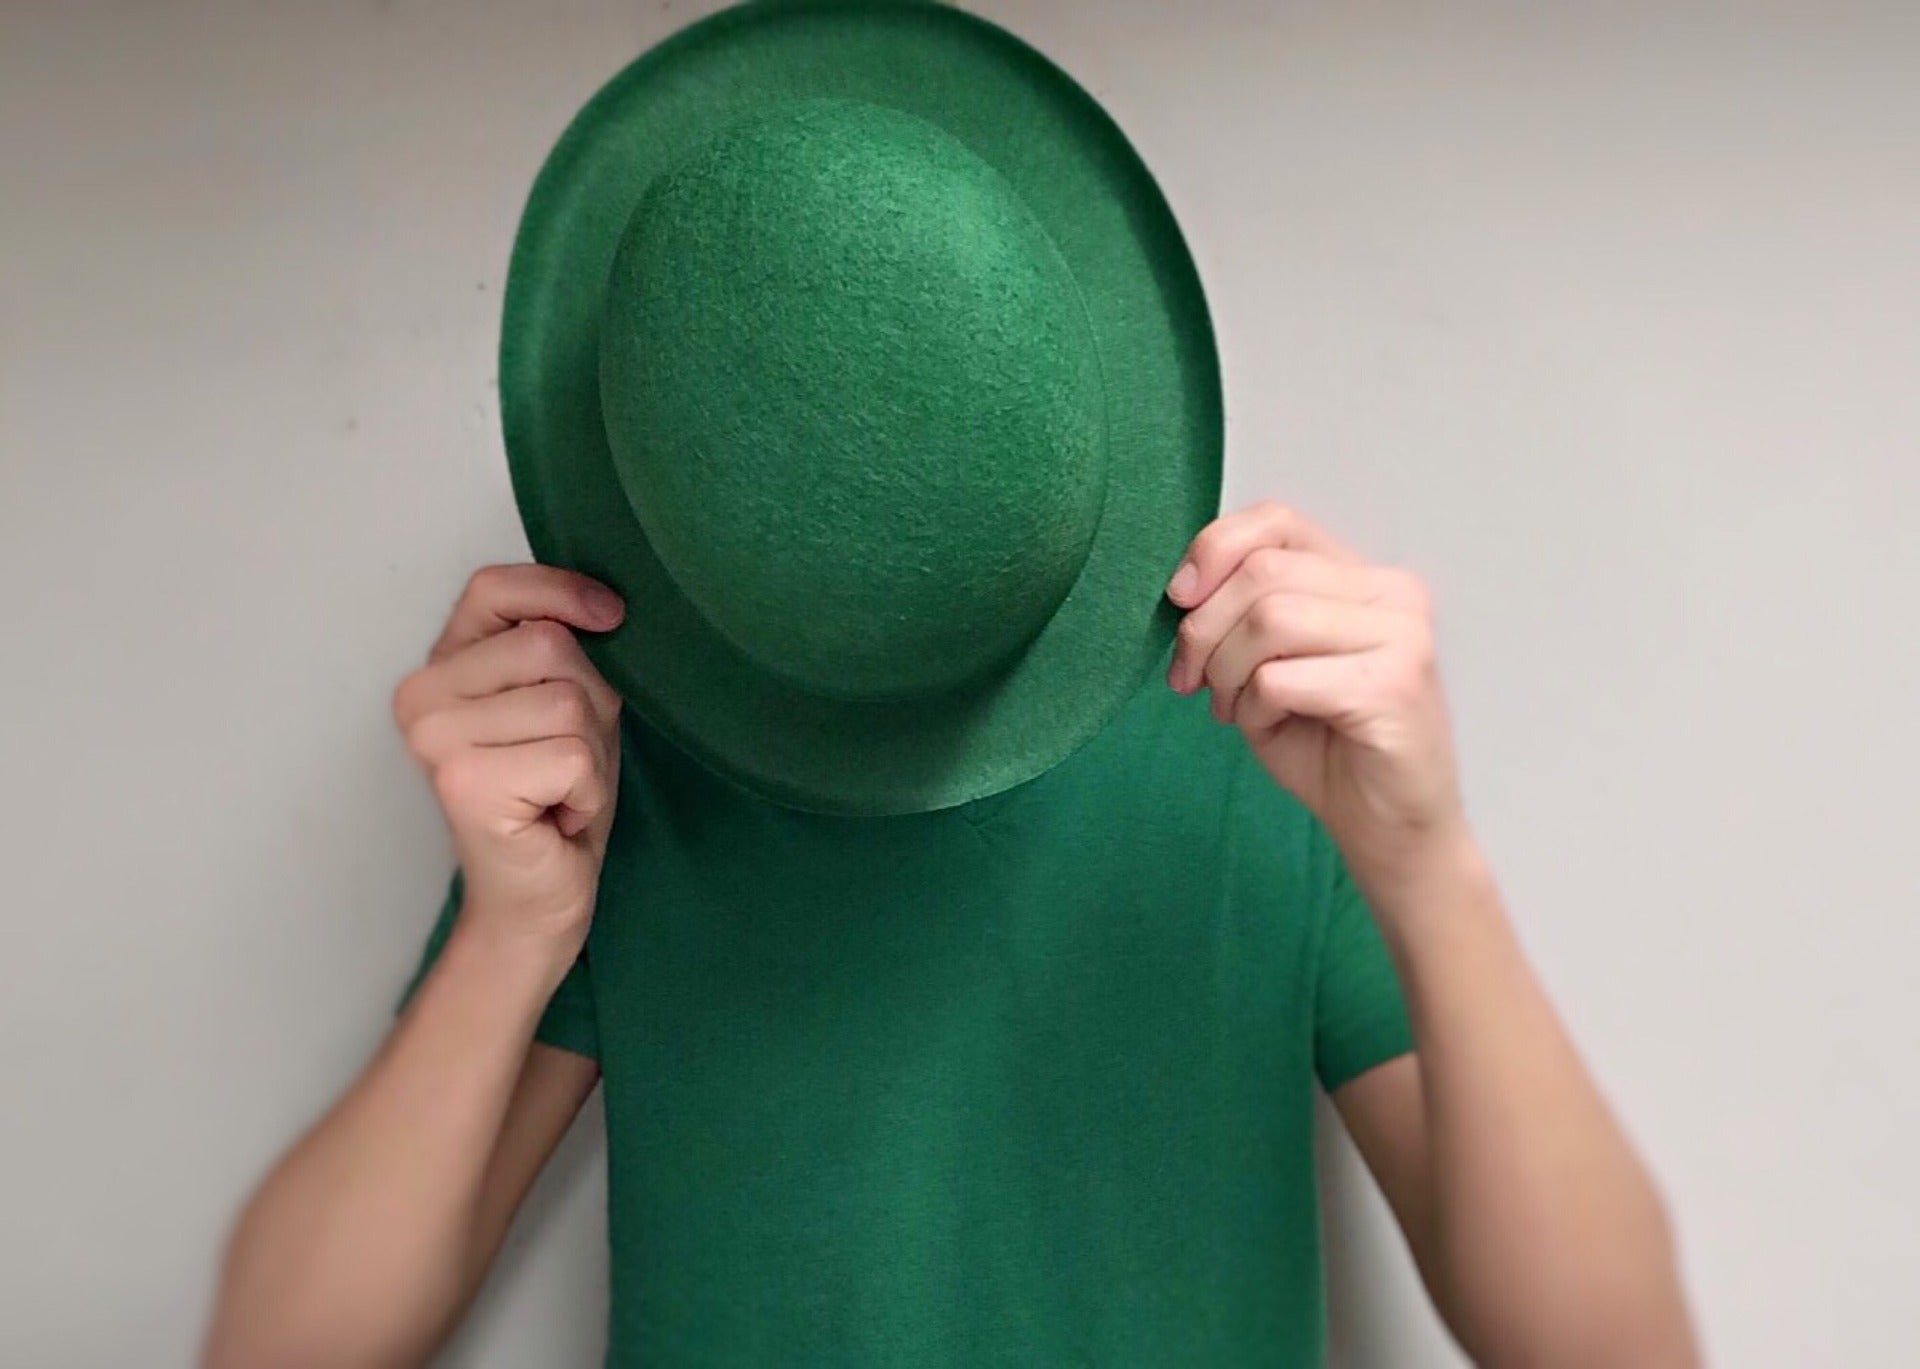 Green hat and shirt